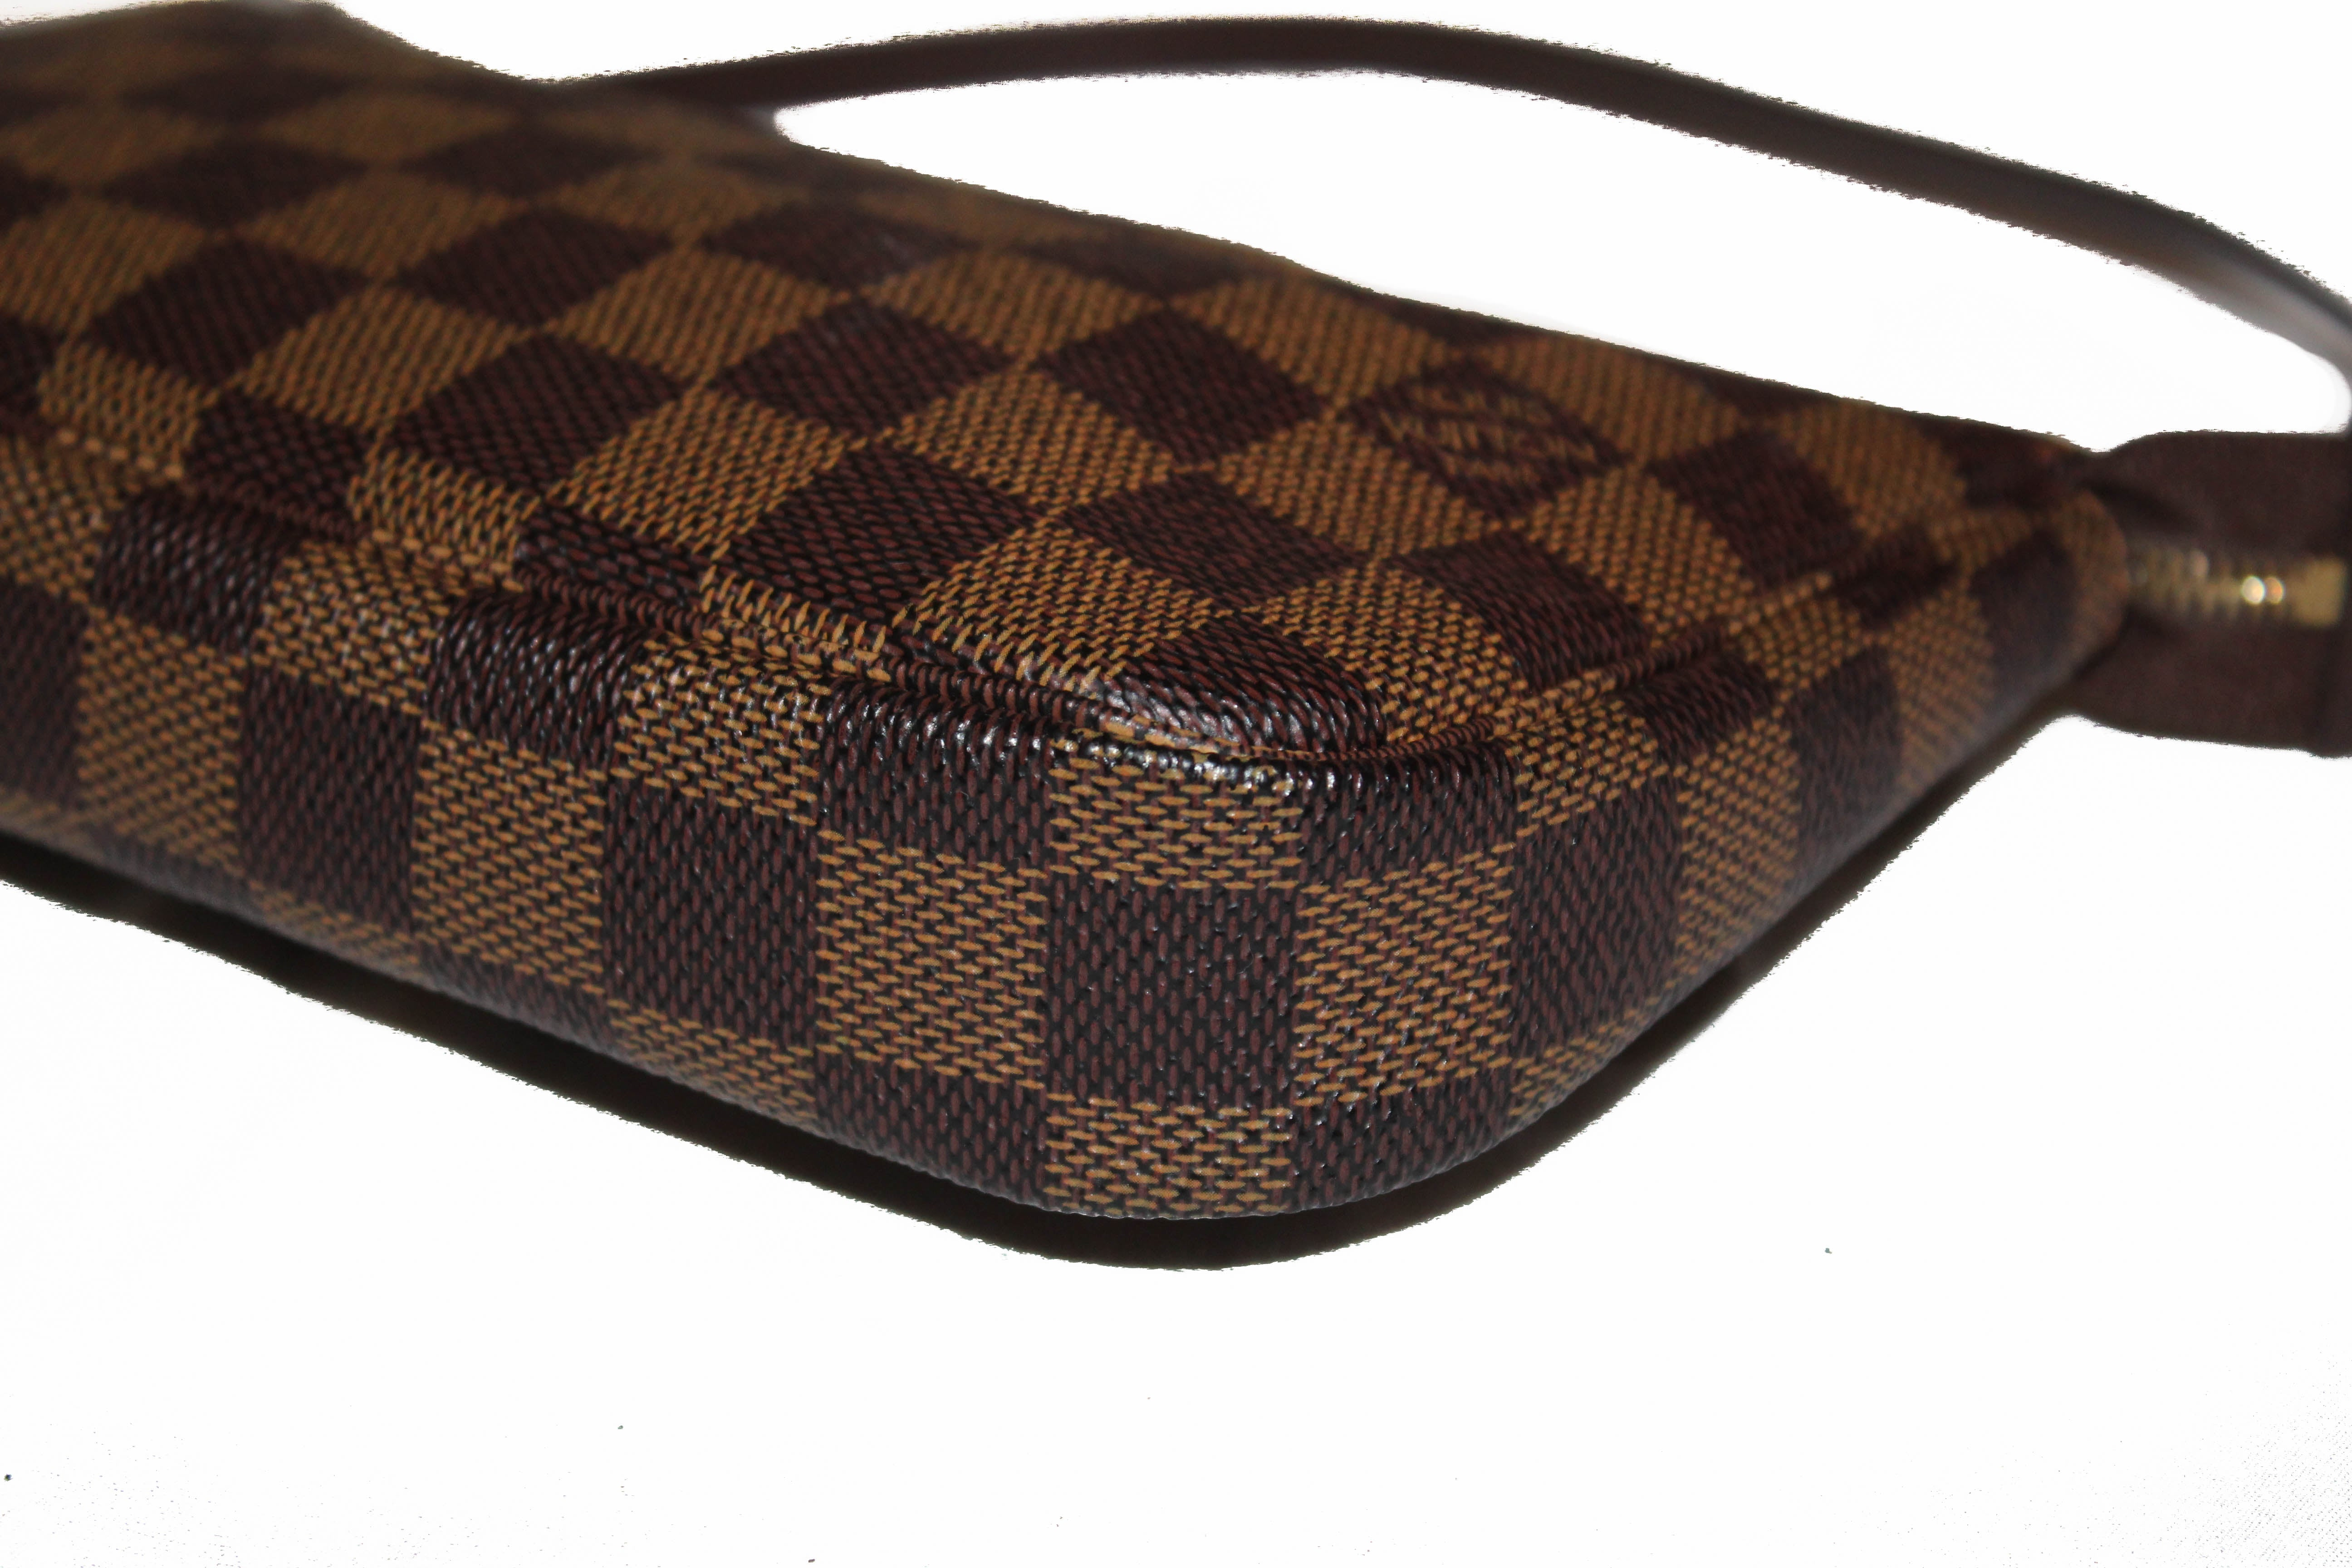 Authentic Louis Vuitton Damier Ebene Pochette Accessoires